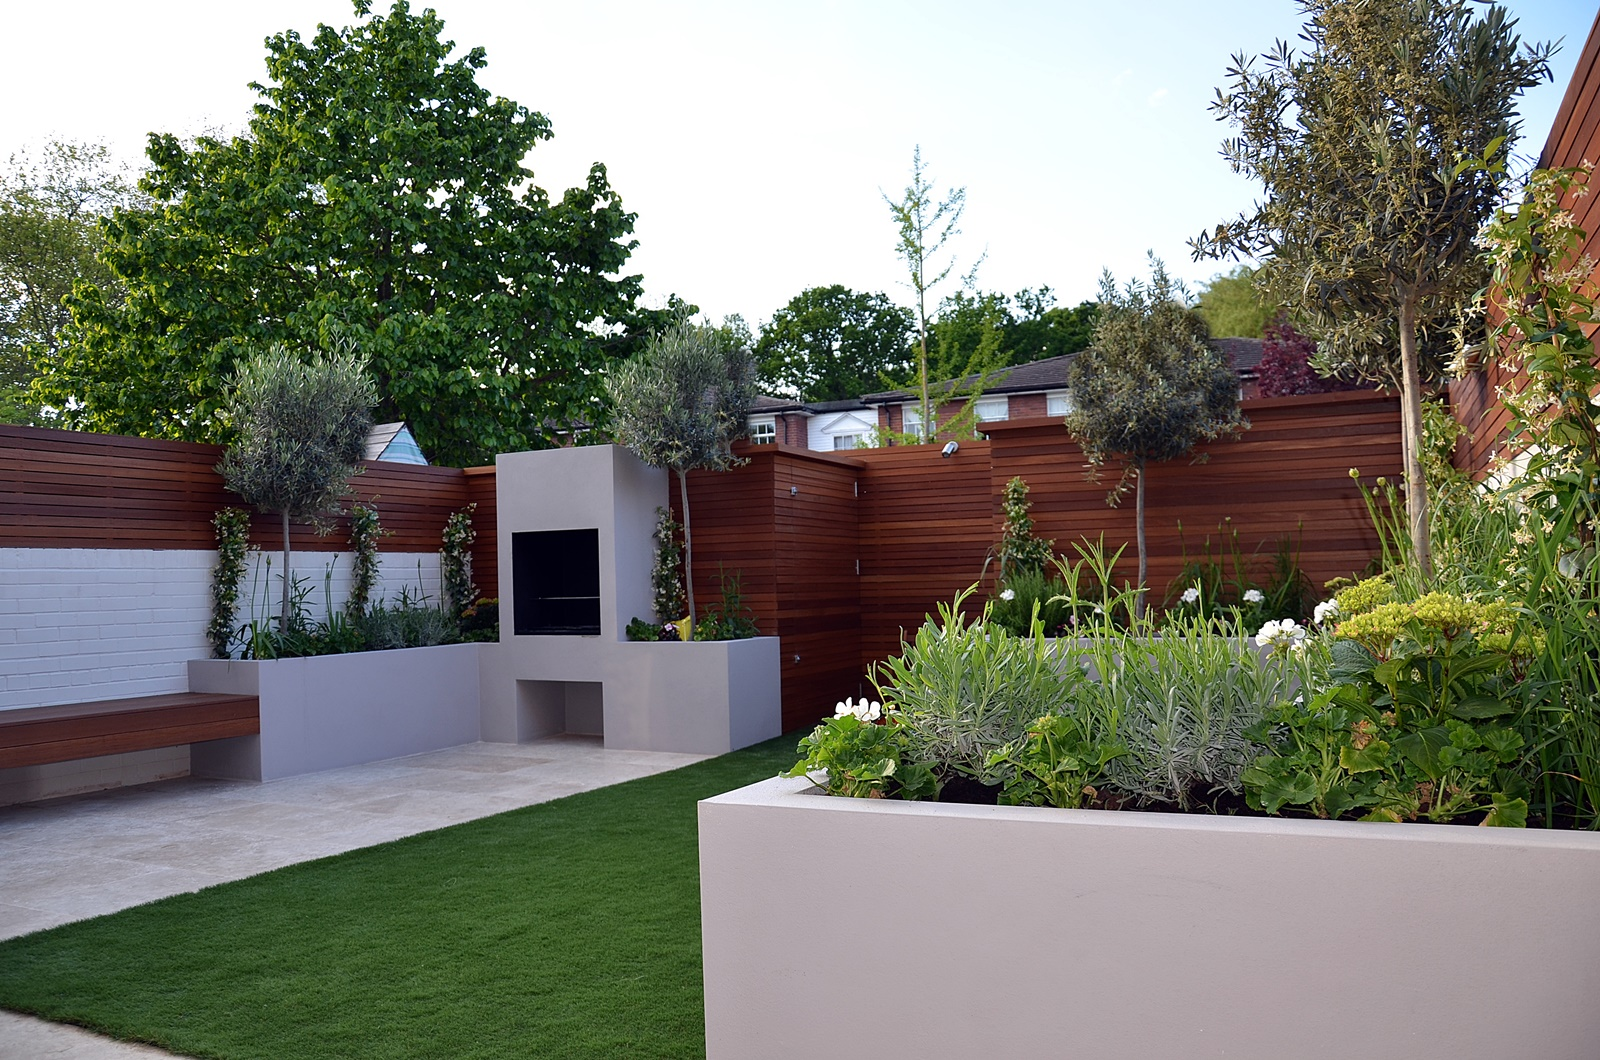 Modern garden design fulham chelsea clapham battersea for Garden designs small gardens